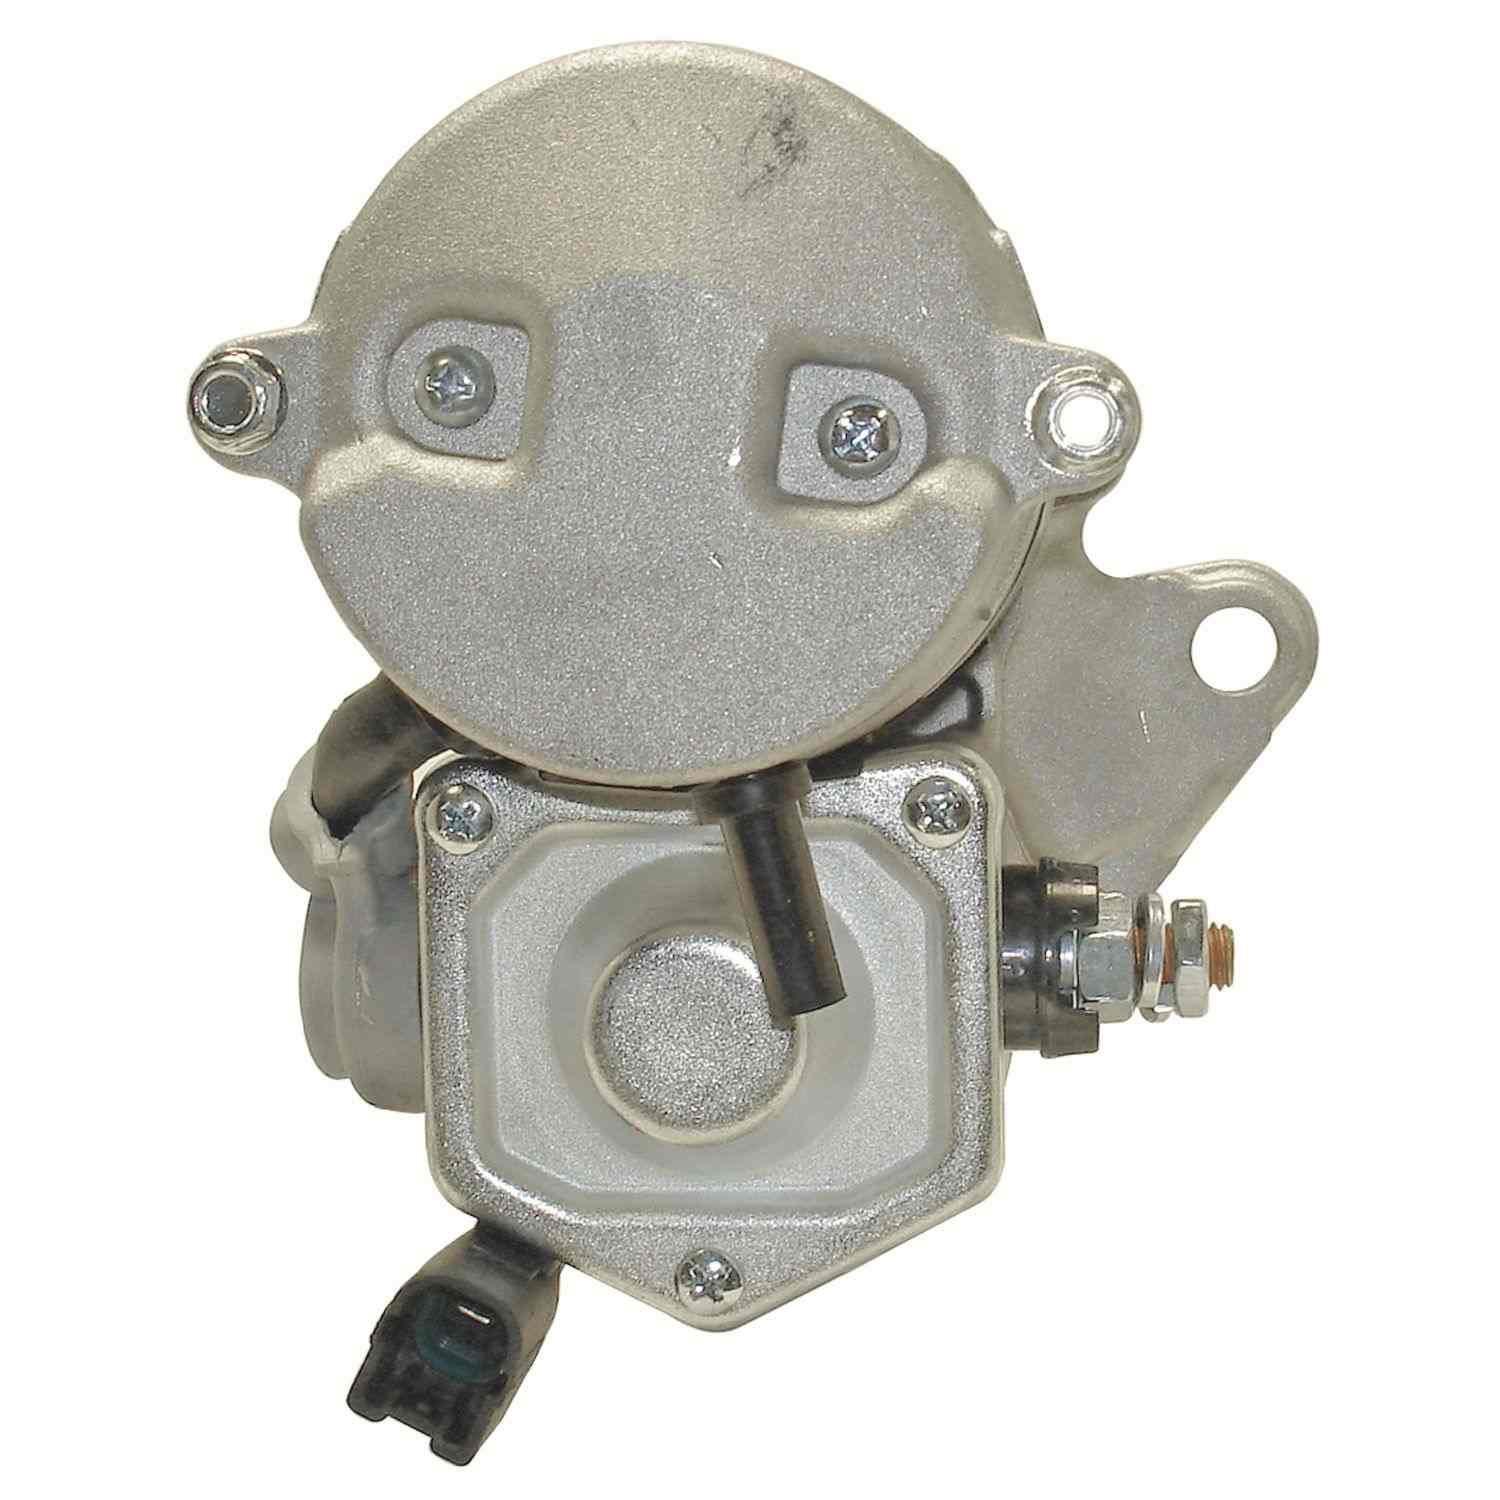 ACDELCO PROFESSIONAL - Reman Starter Motor - DCC 336-1711